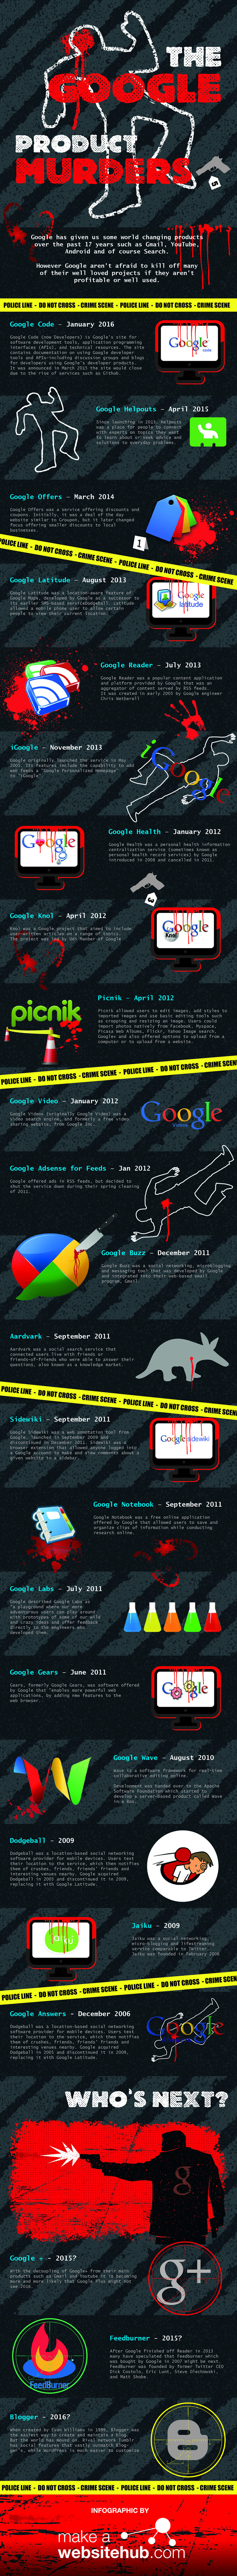 The Google Product Murders #infographic